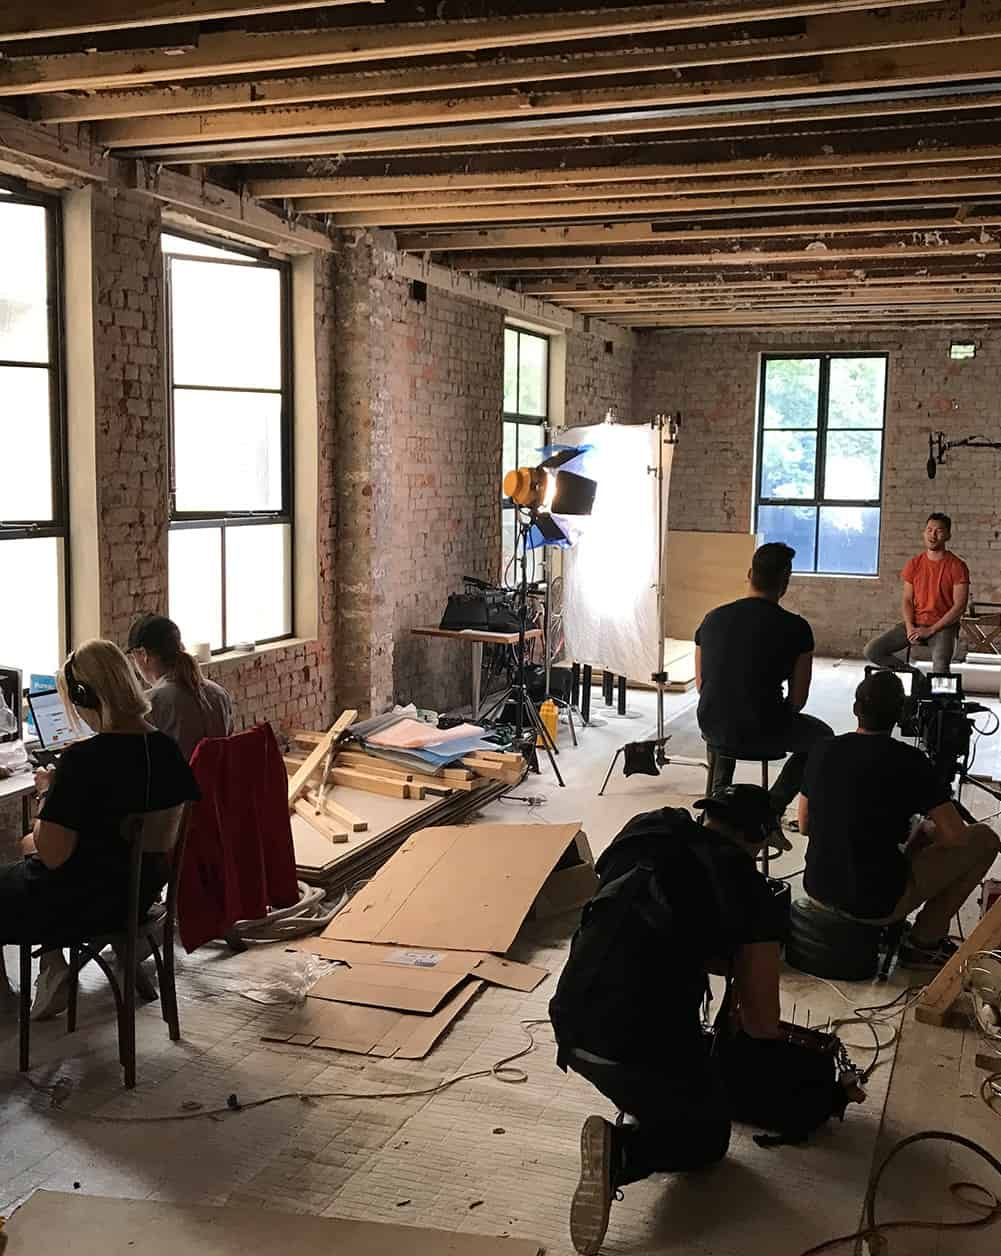 Melbourne video production company - Luminaire Pictures - behind the scenes